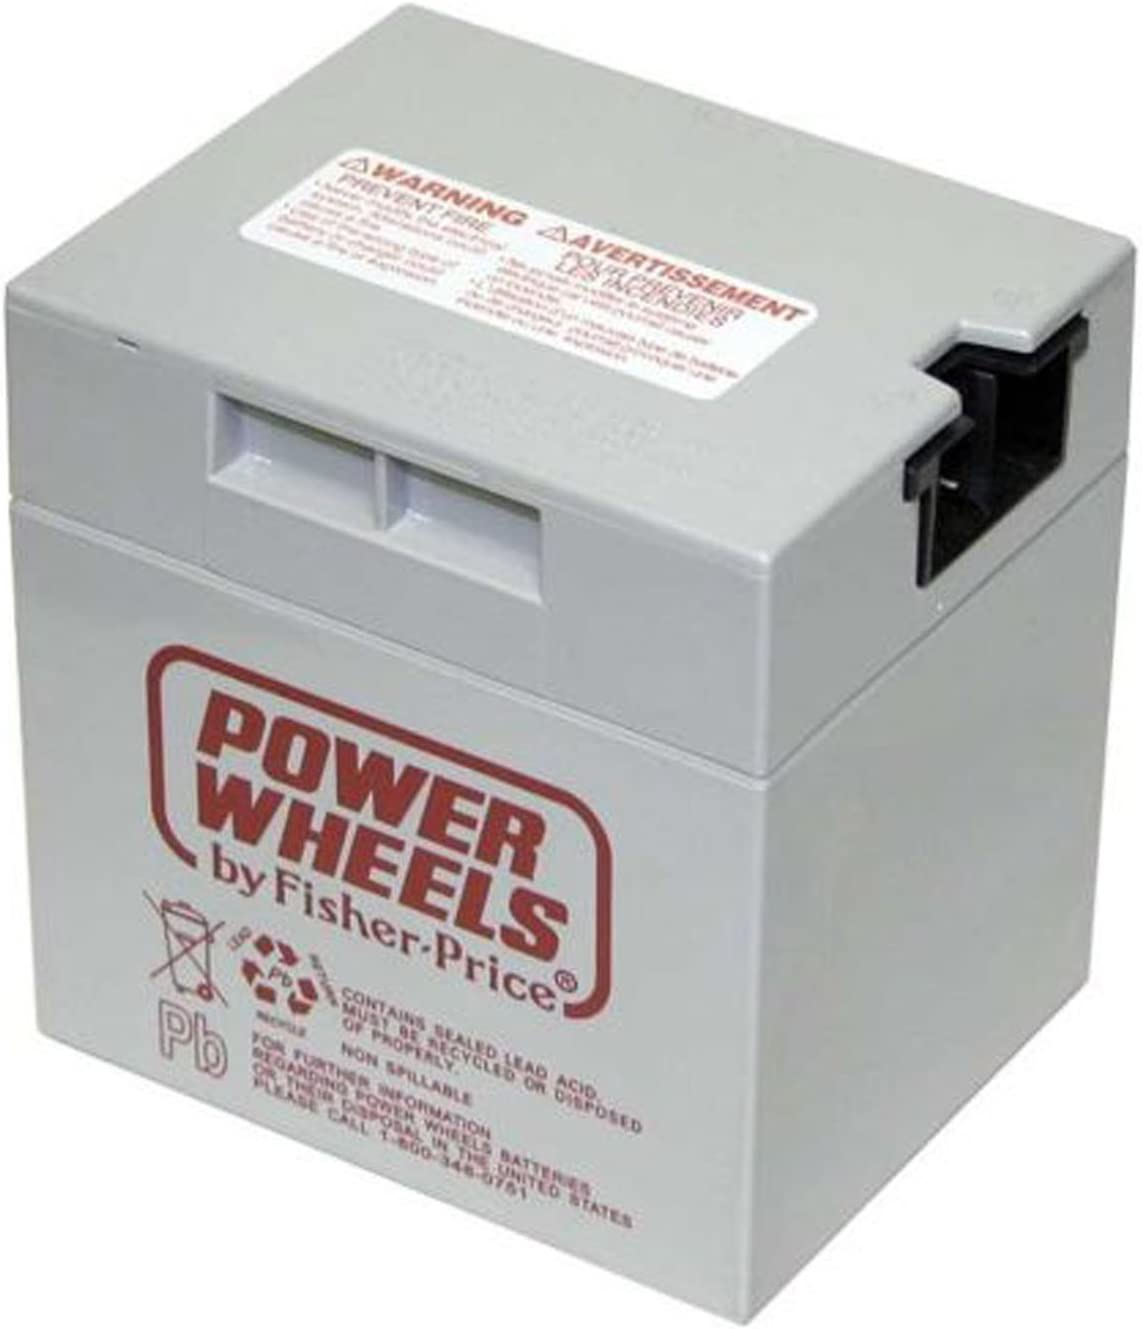 Charger For 00801-0638 Power Wheels Fisher Price 12V Volt Gray Battery Charger